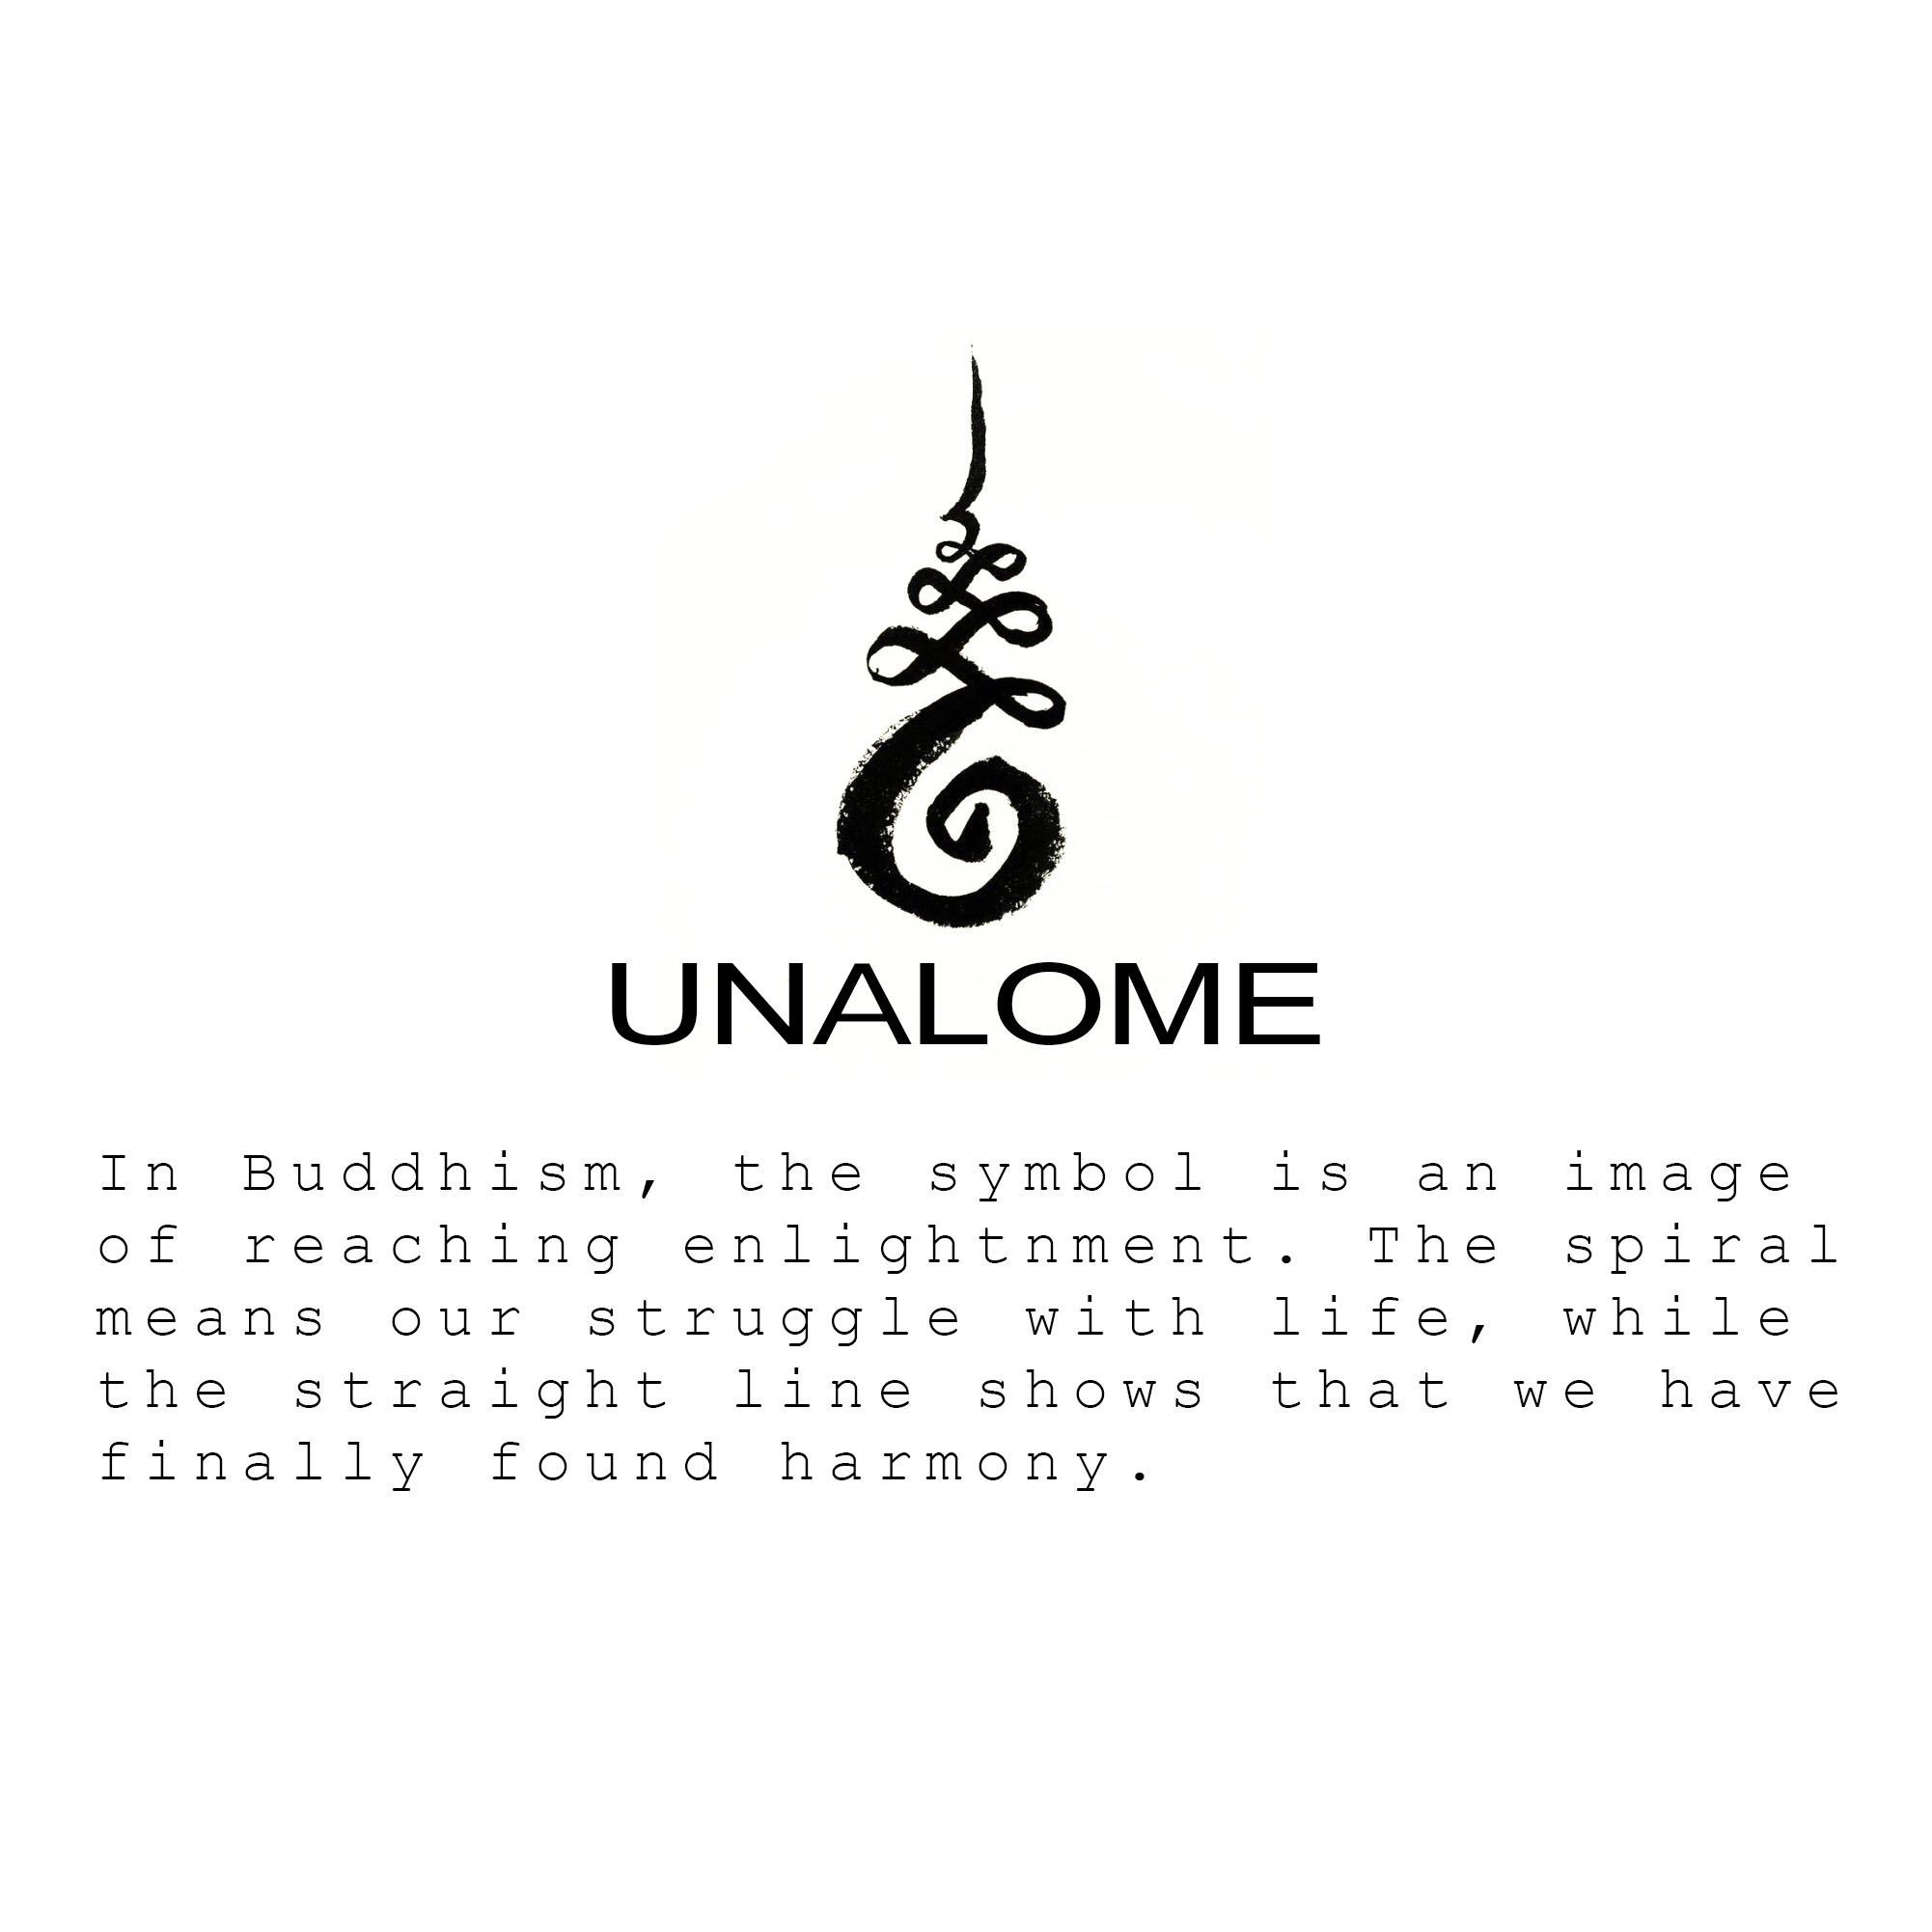 The Unalome: Image Result For Unalome Meaning